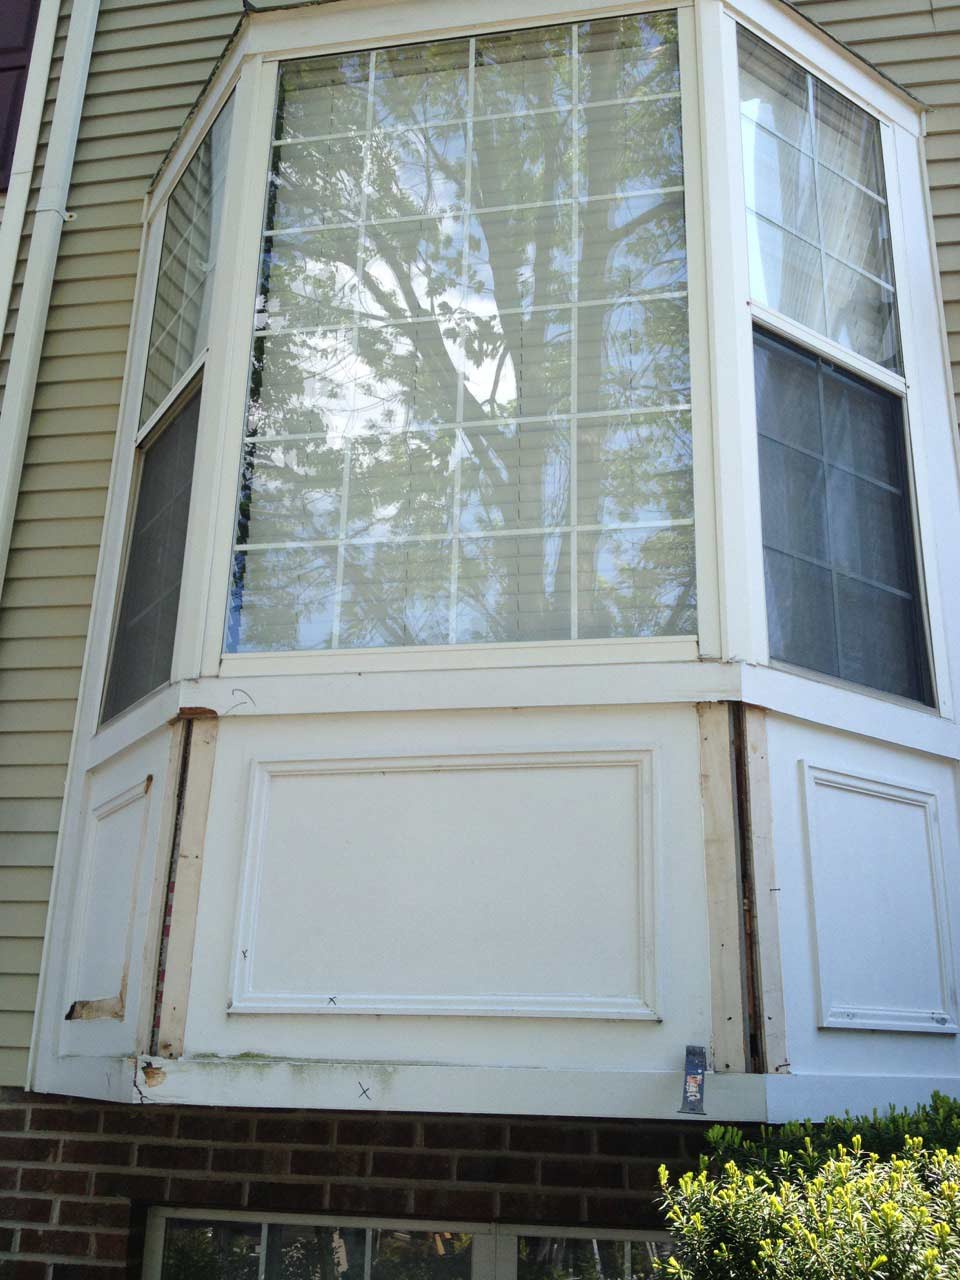 Stb painting company odenton md residential rotting wood for Window and door replacement company